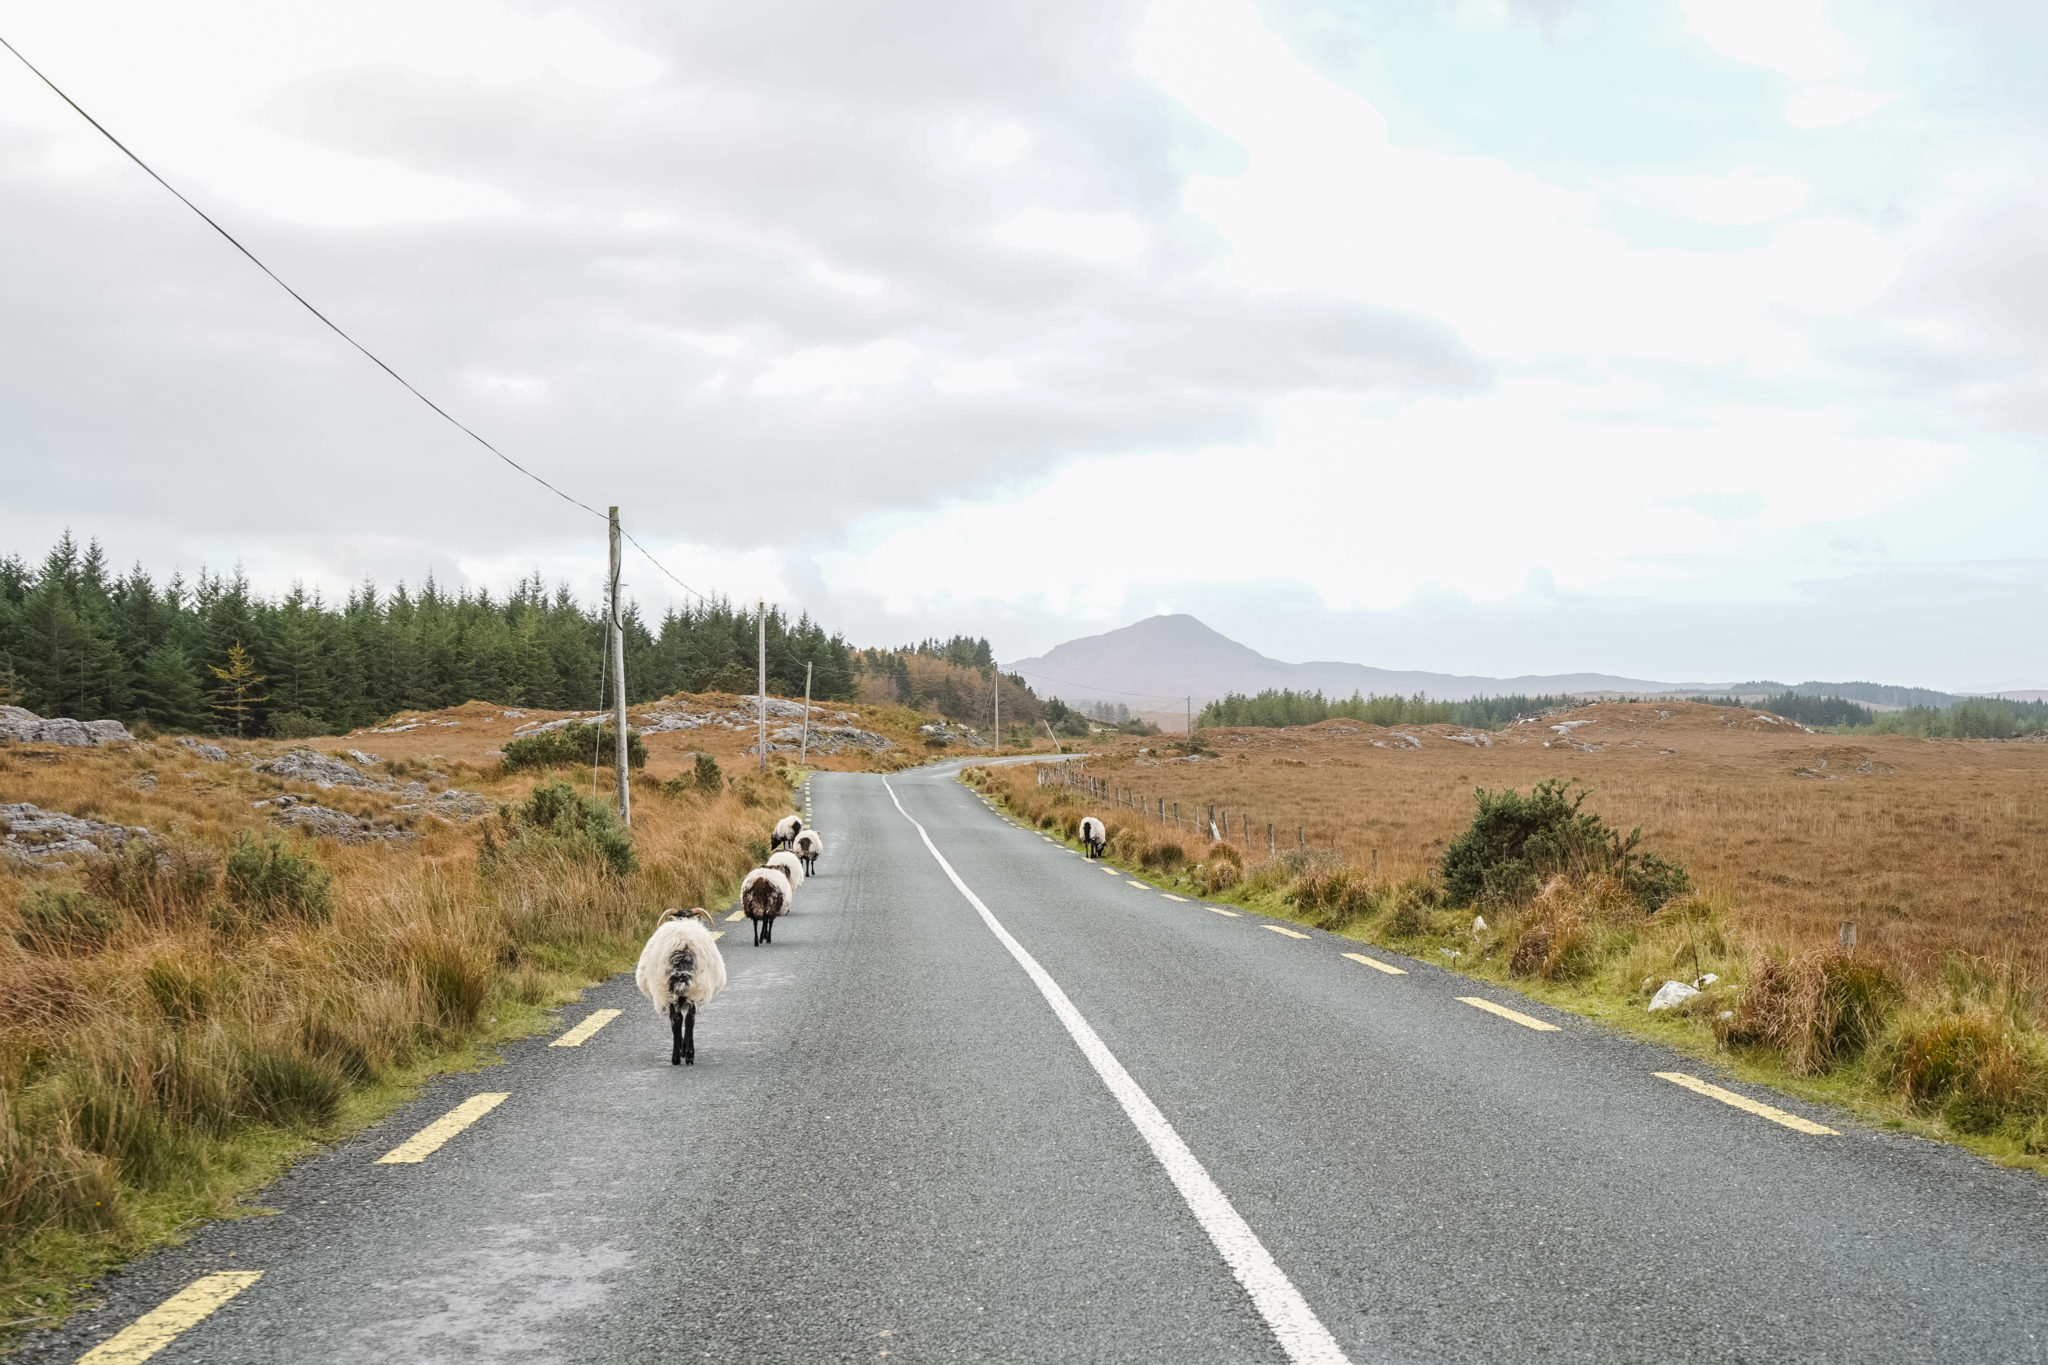 connemara-irlande-mouton-road-trip-blacksheep